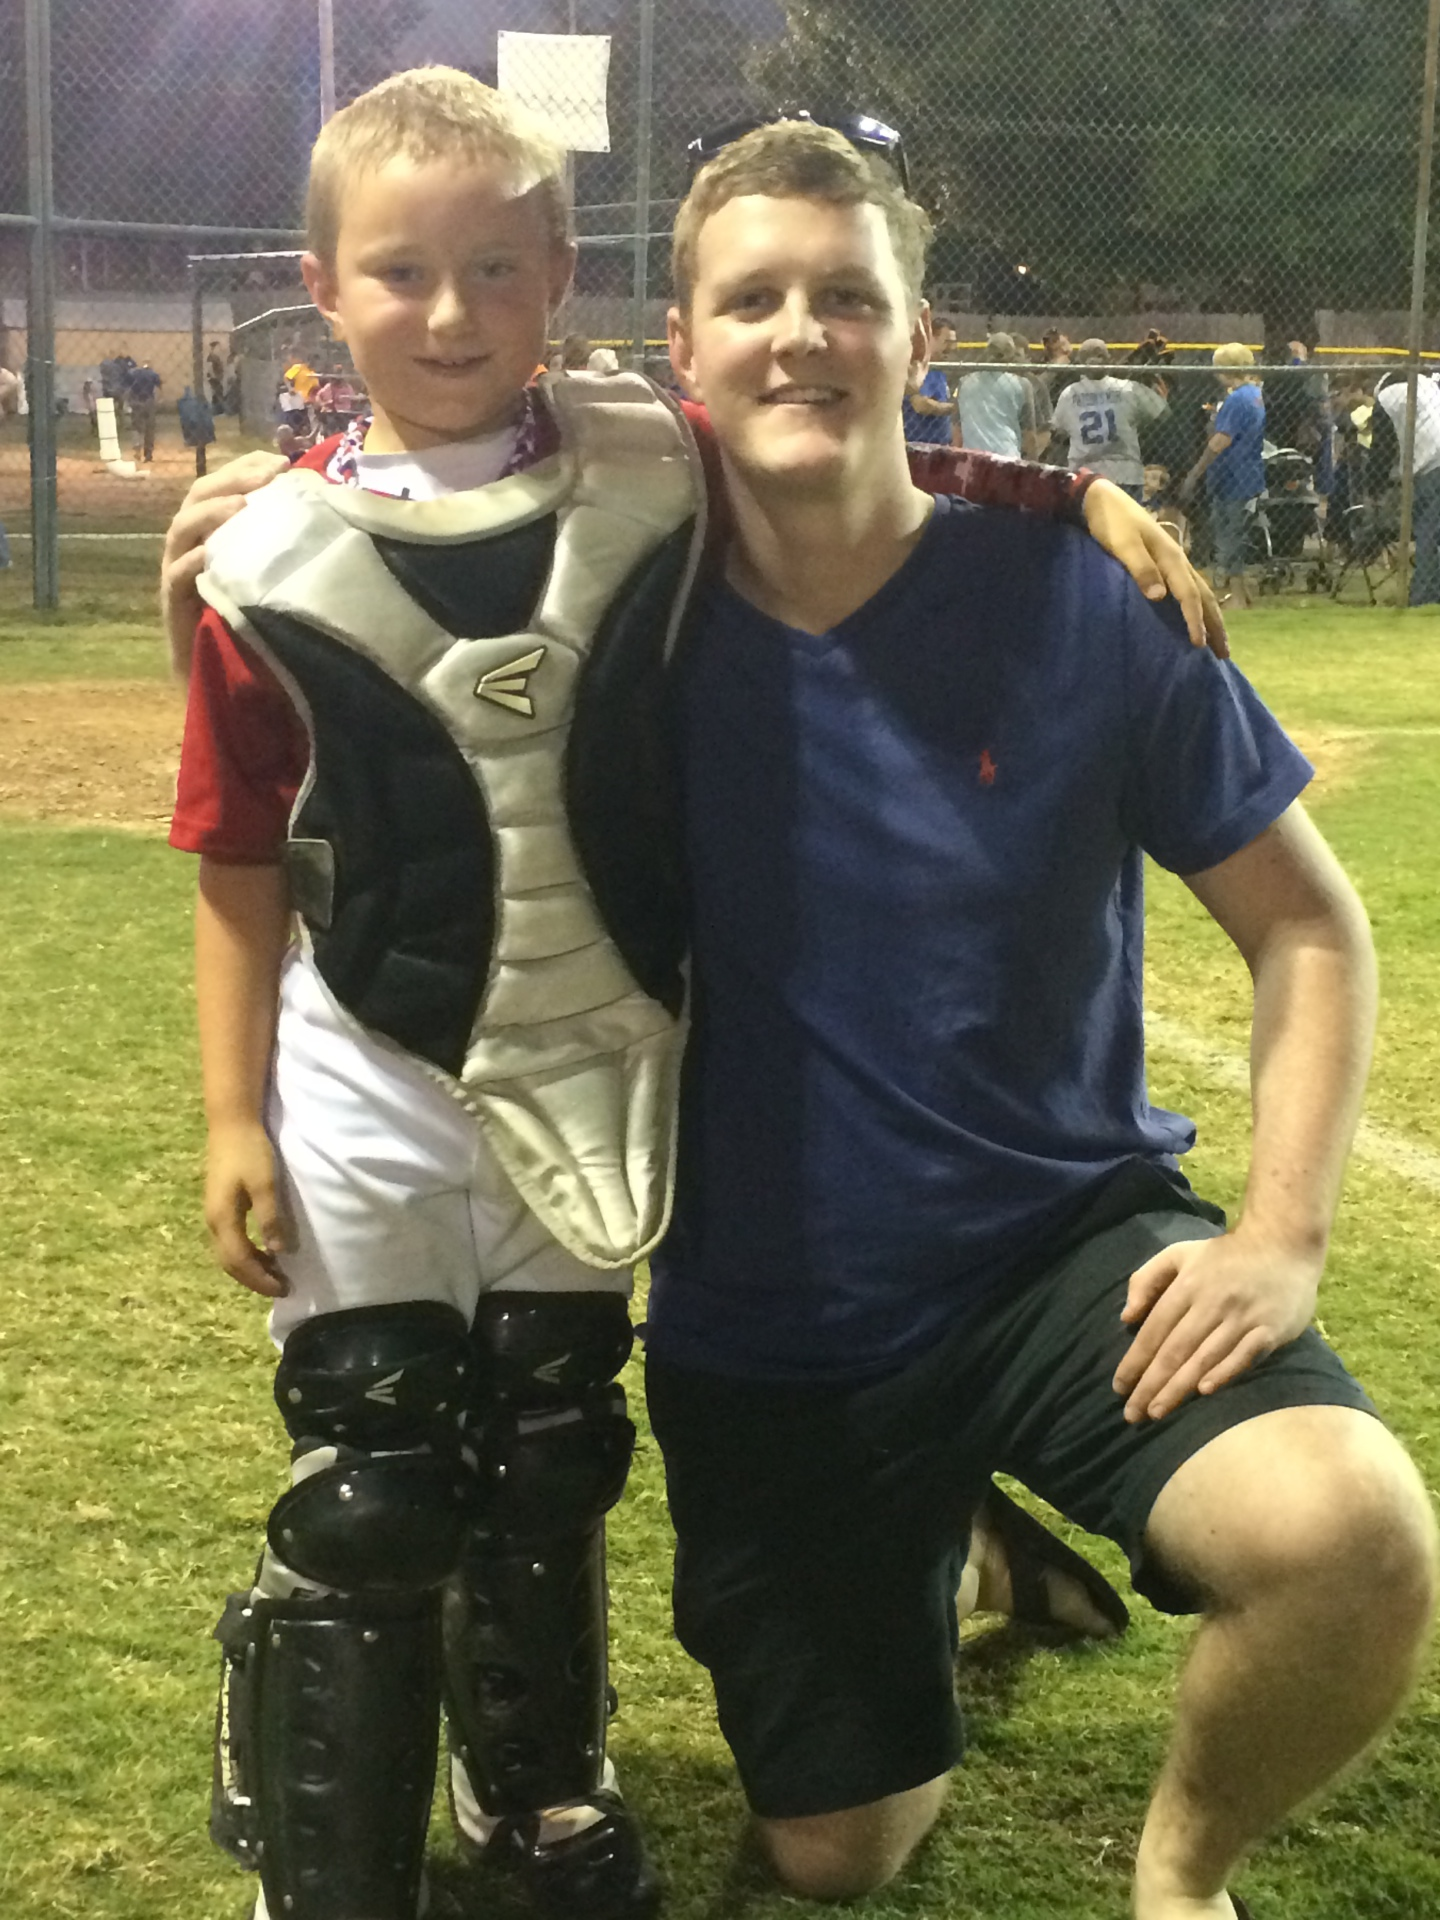 Cody, airman, came to watch AJ play some ball